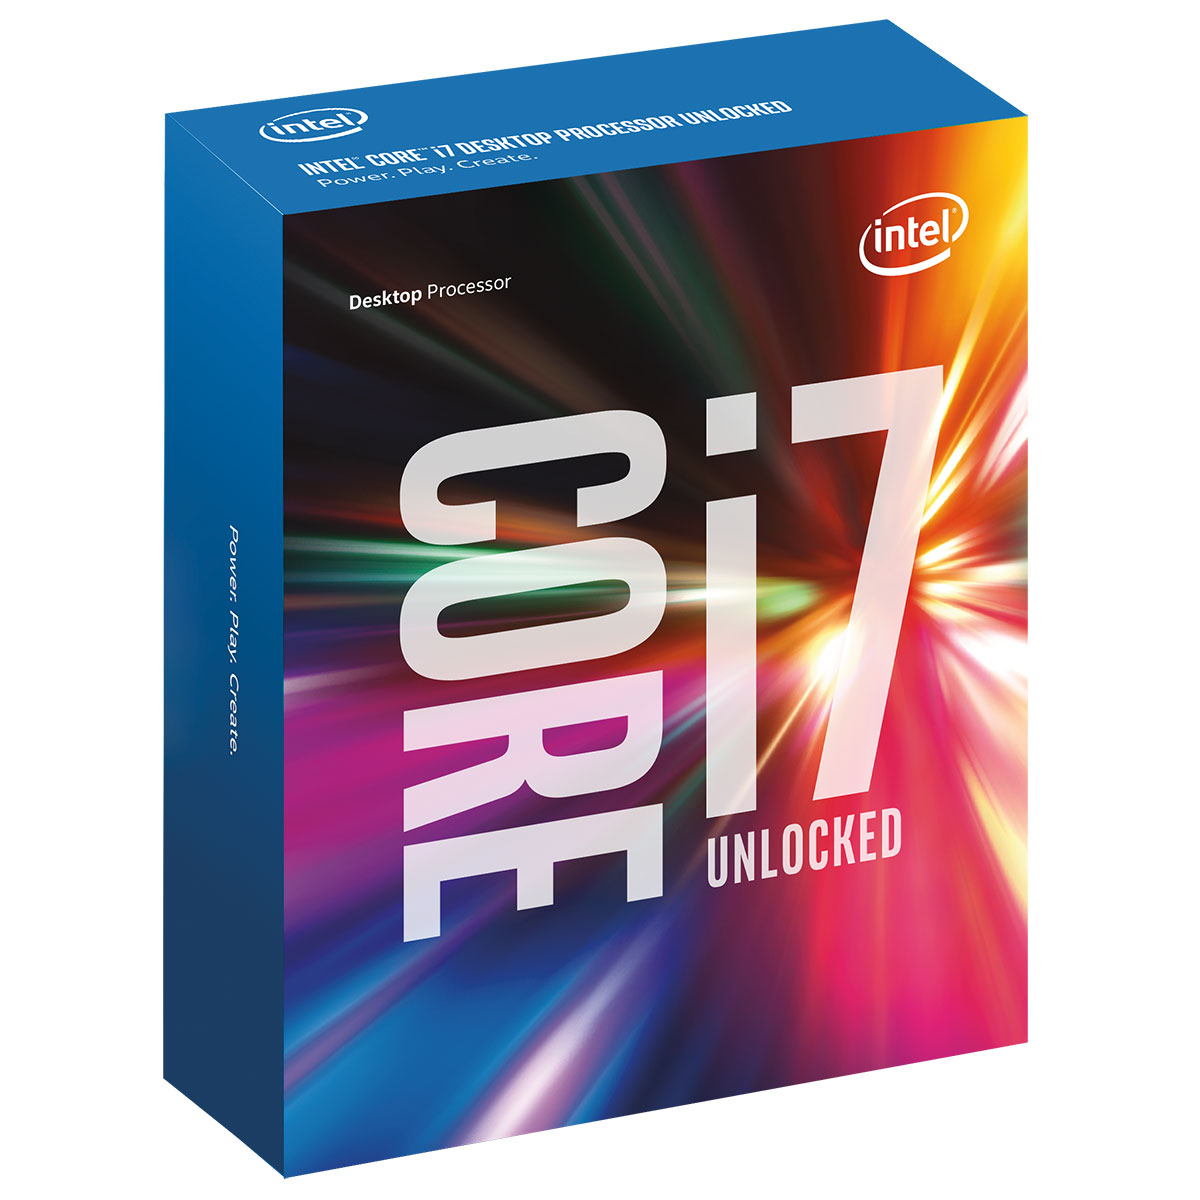 Processeur Intel Core i7 7700k Quad Core (4.20 GHz) Socket 1151 - Cache 8 Mo (Box), informatique ile de la réunion